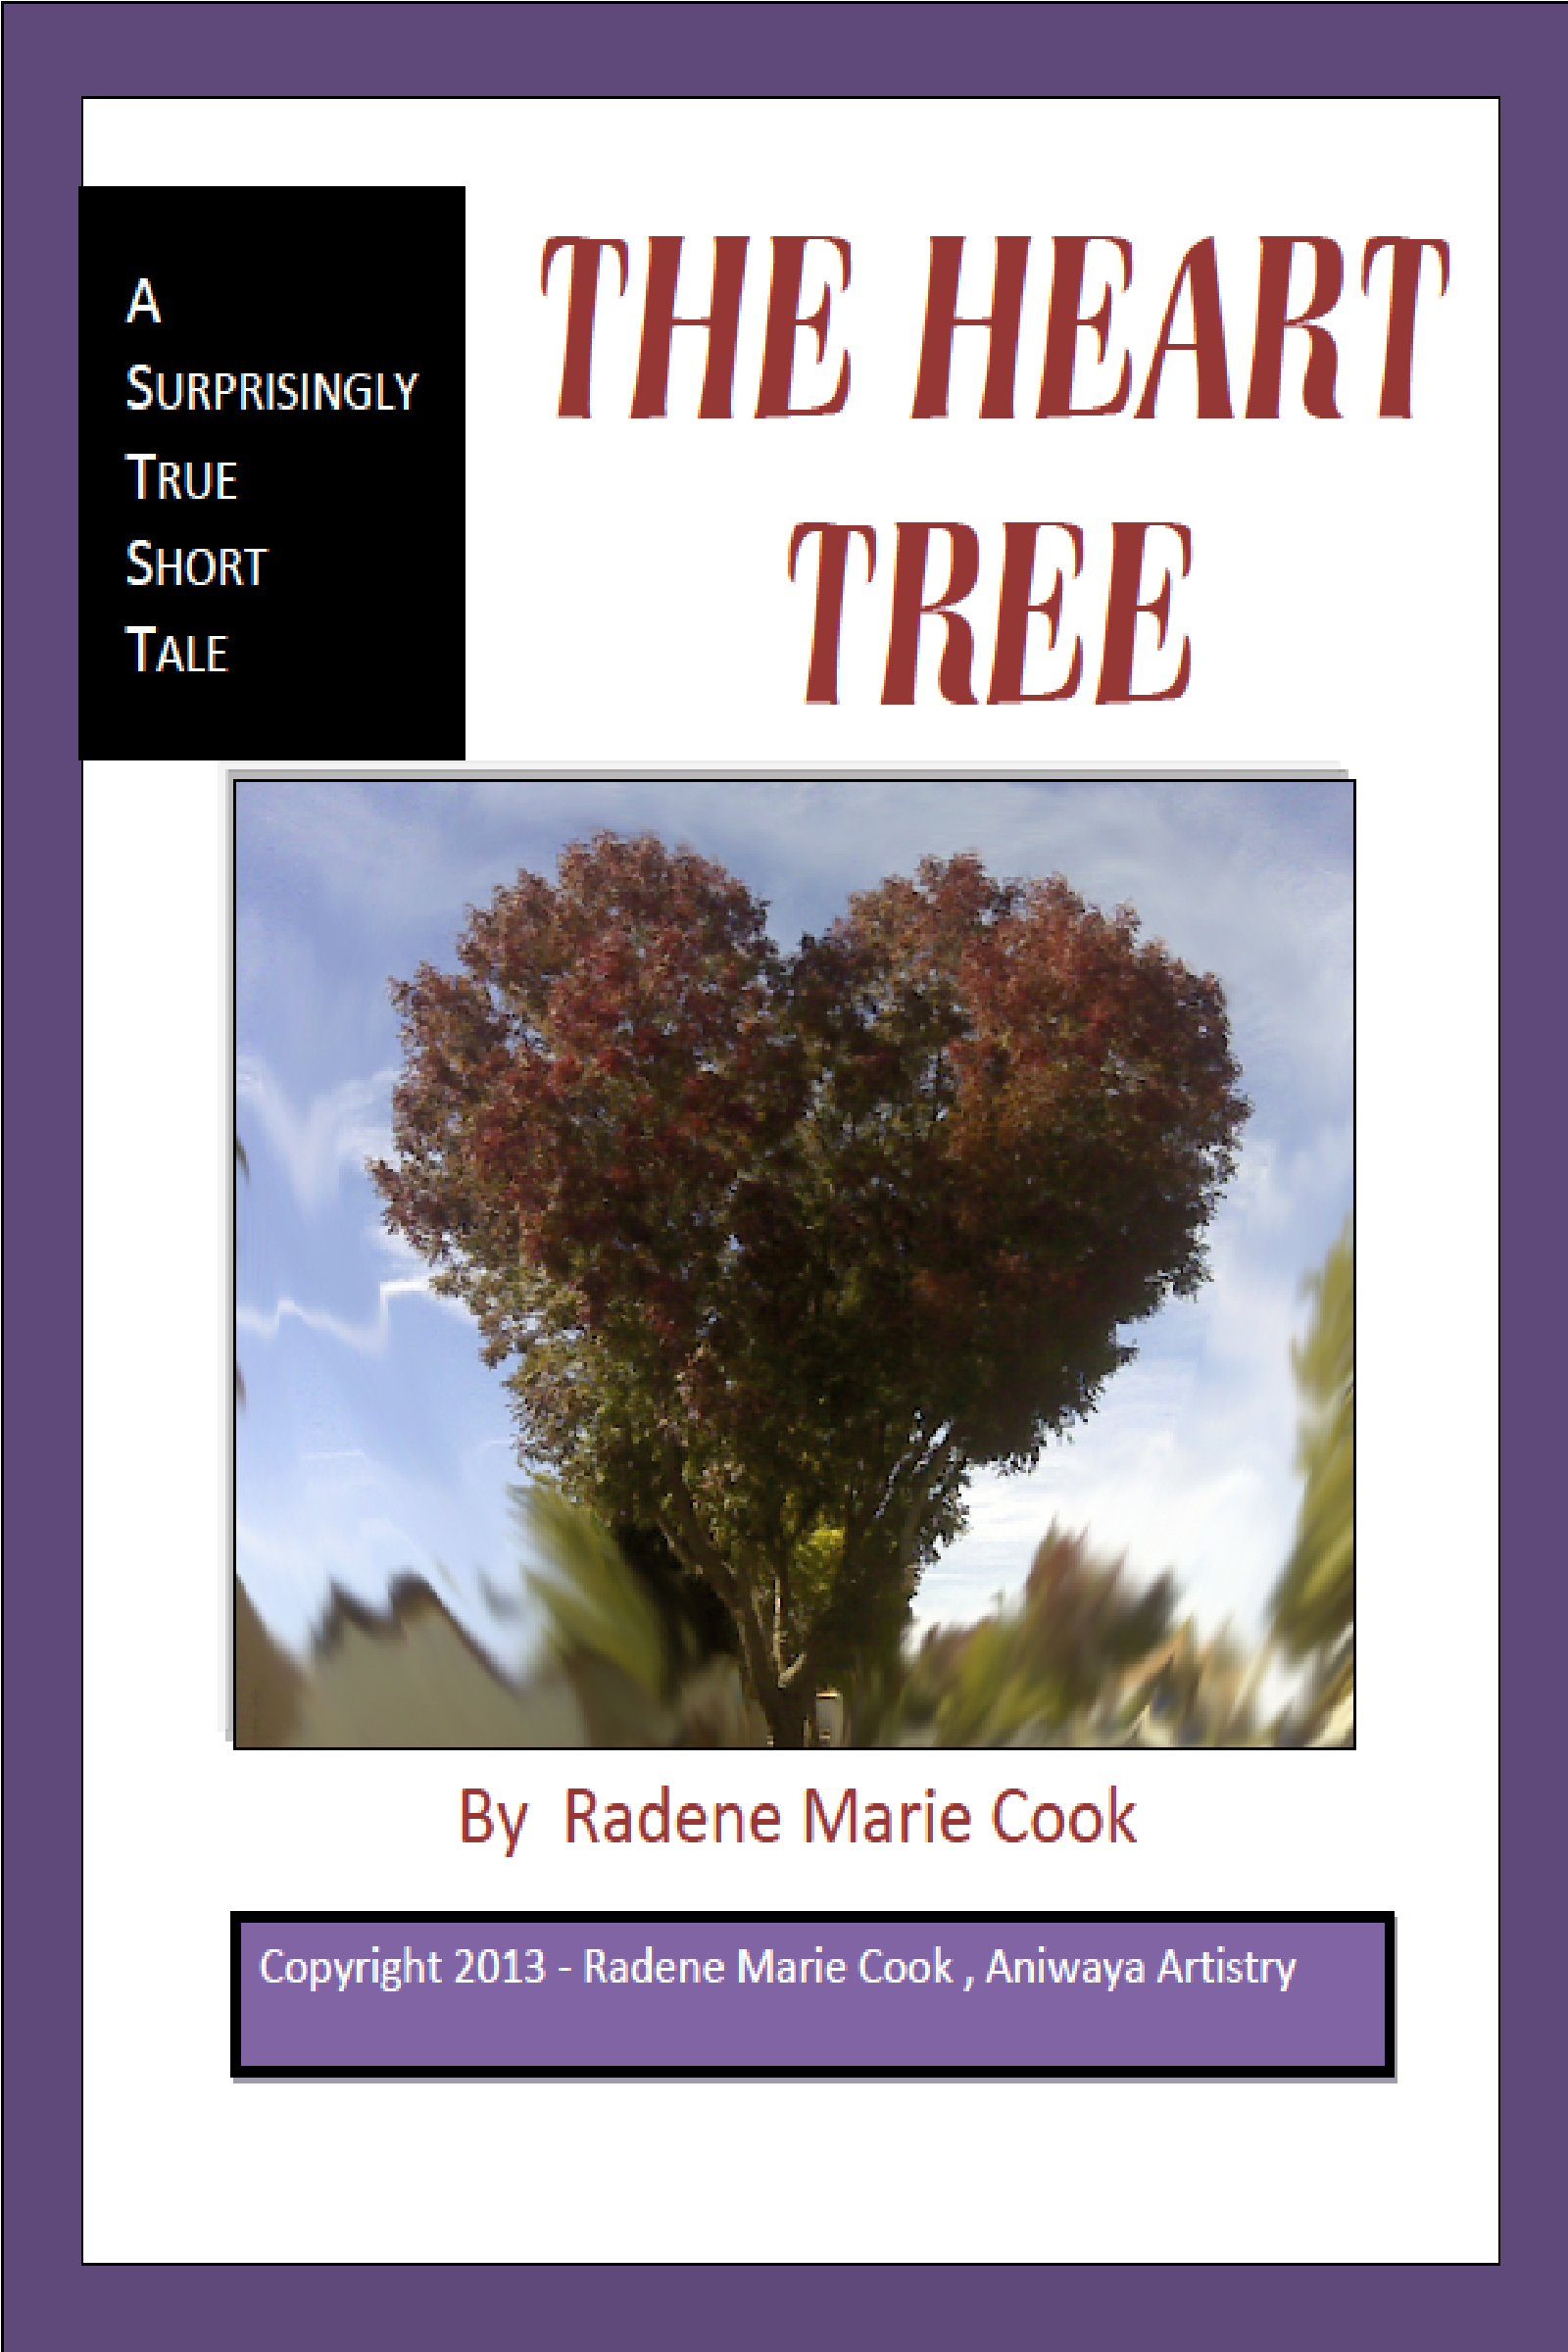 Book cover with heart tree in center